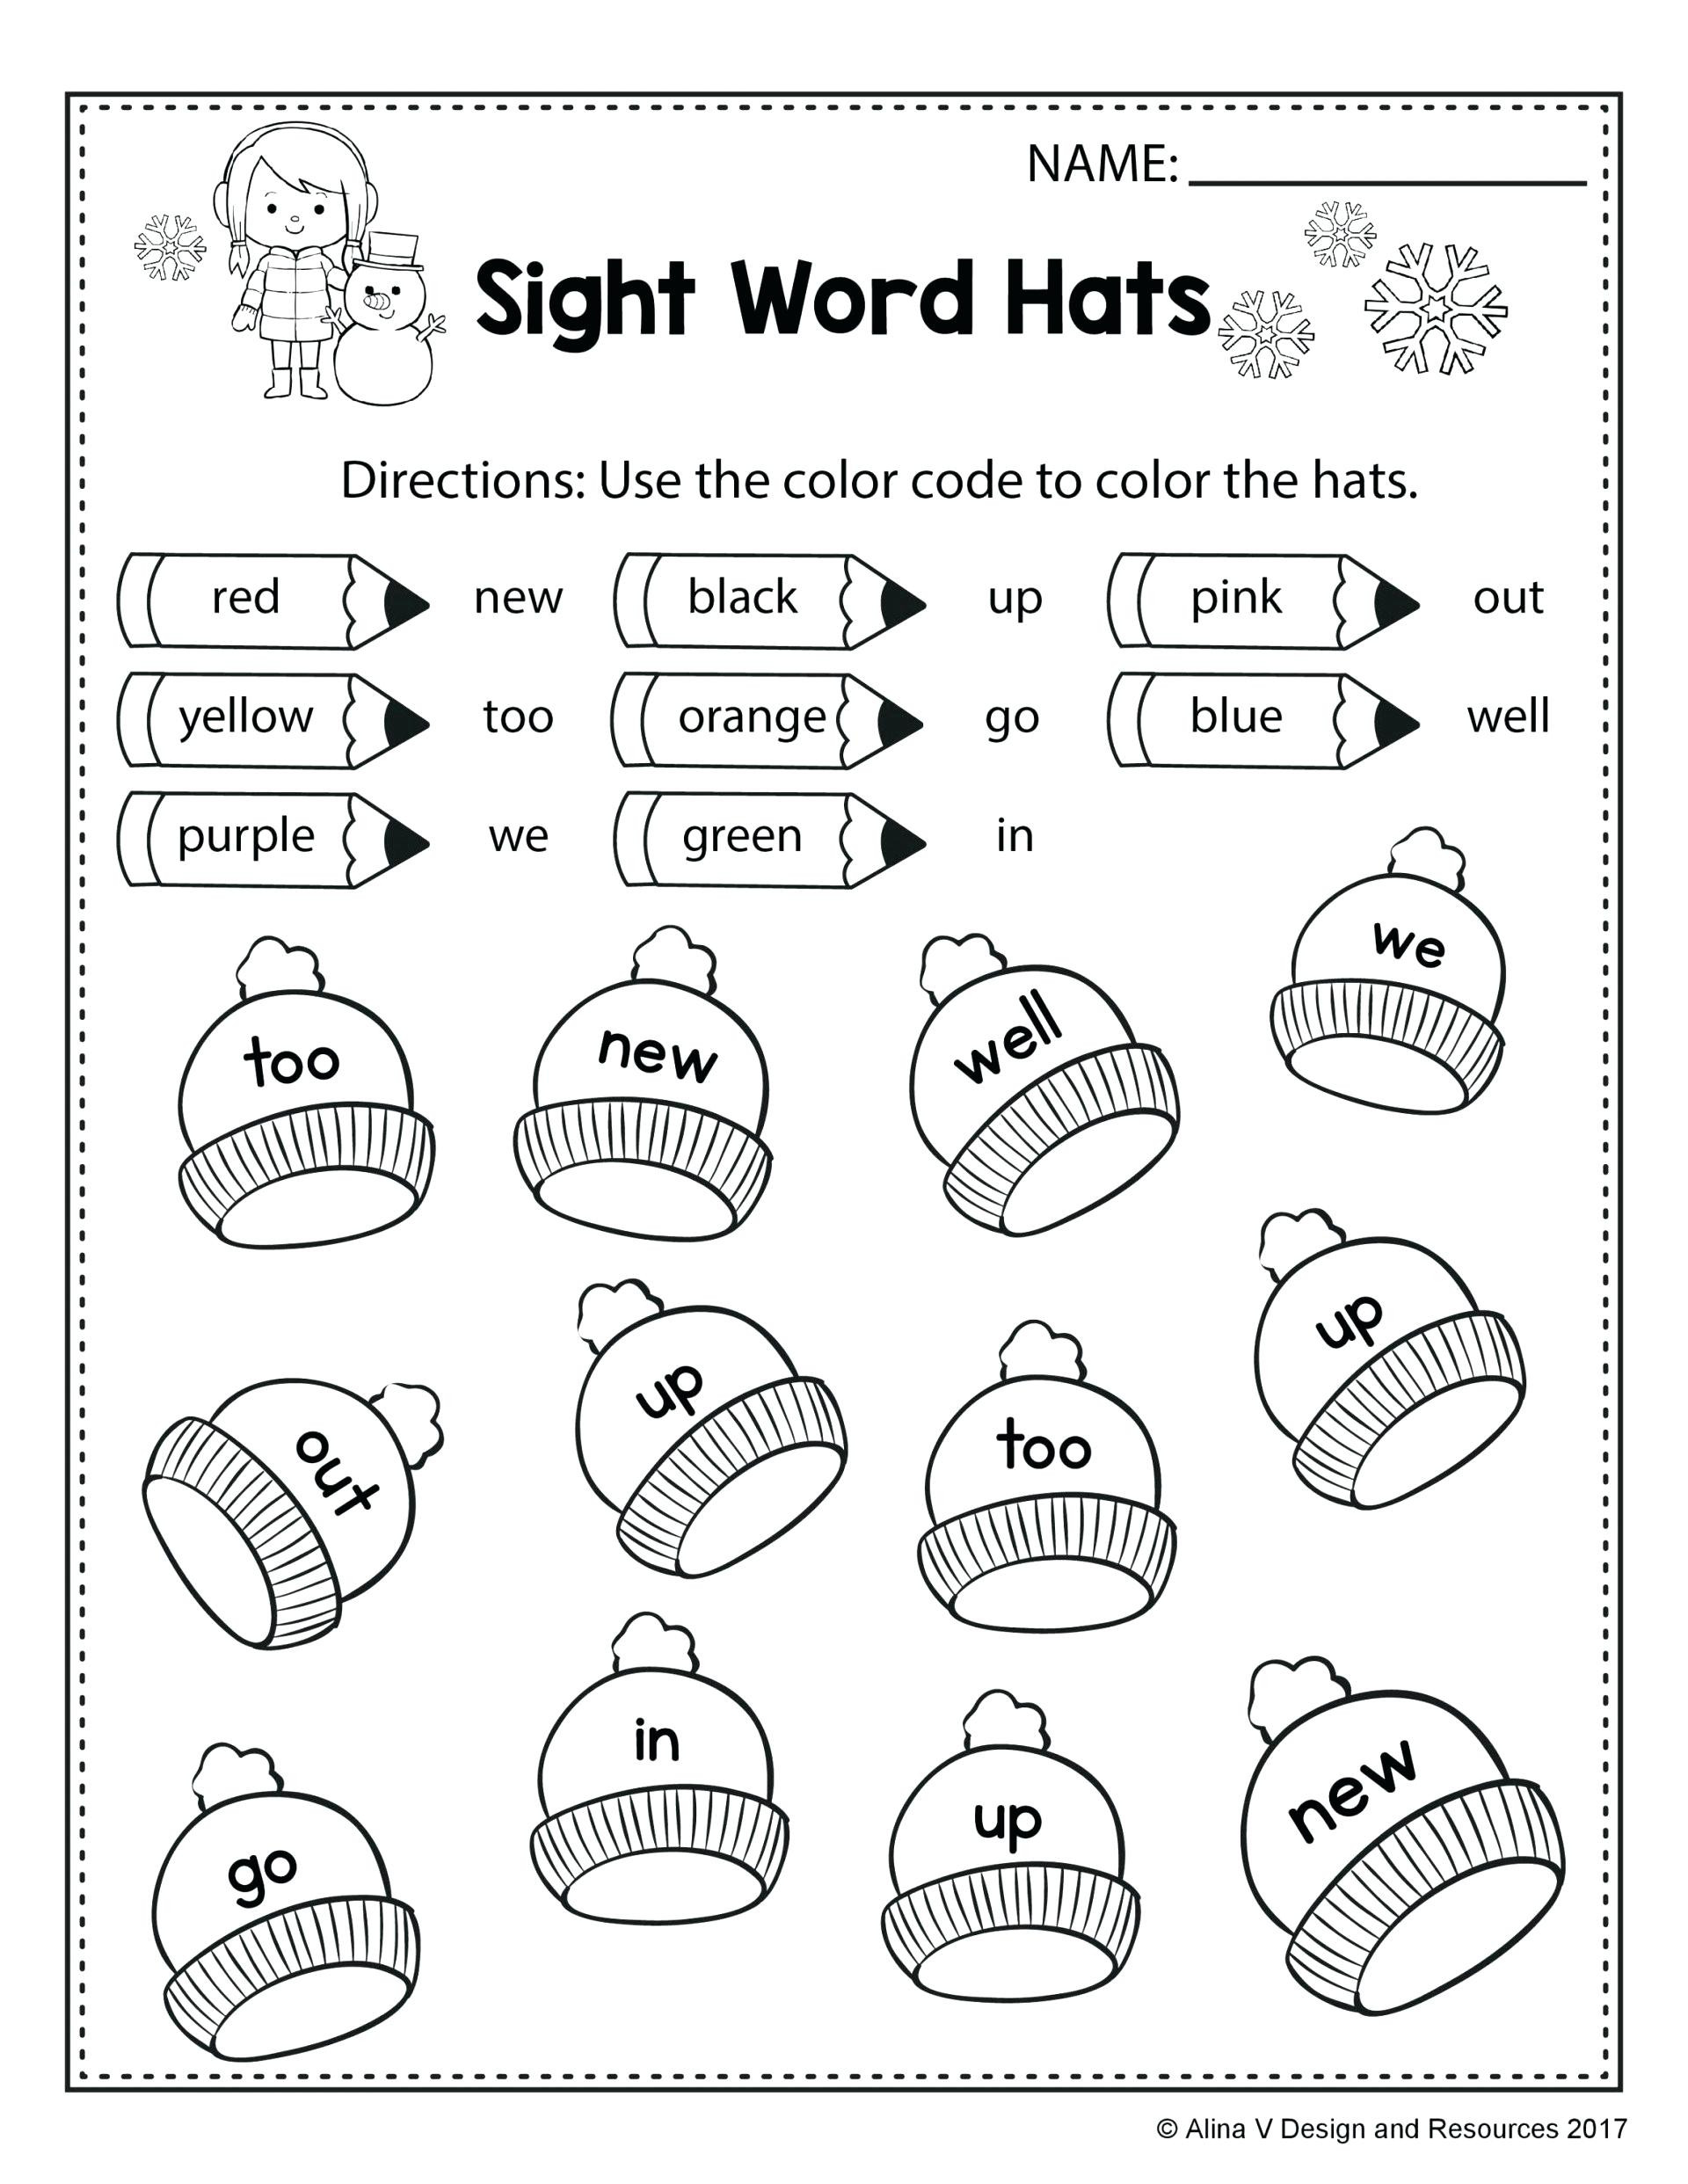 Number Pattern Worksheets 5th Grade Number Patterns Worksheets 6th Grade